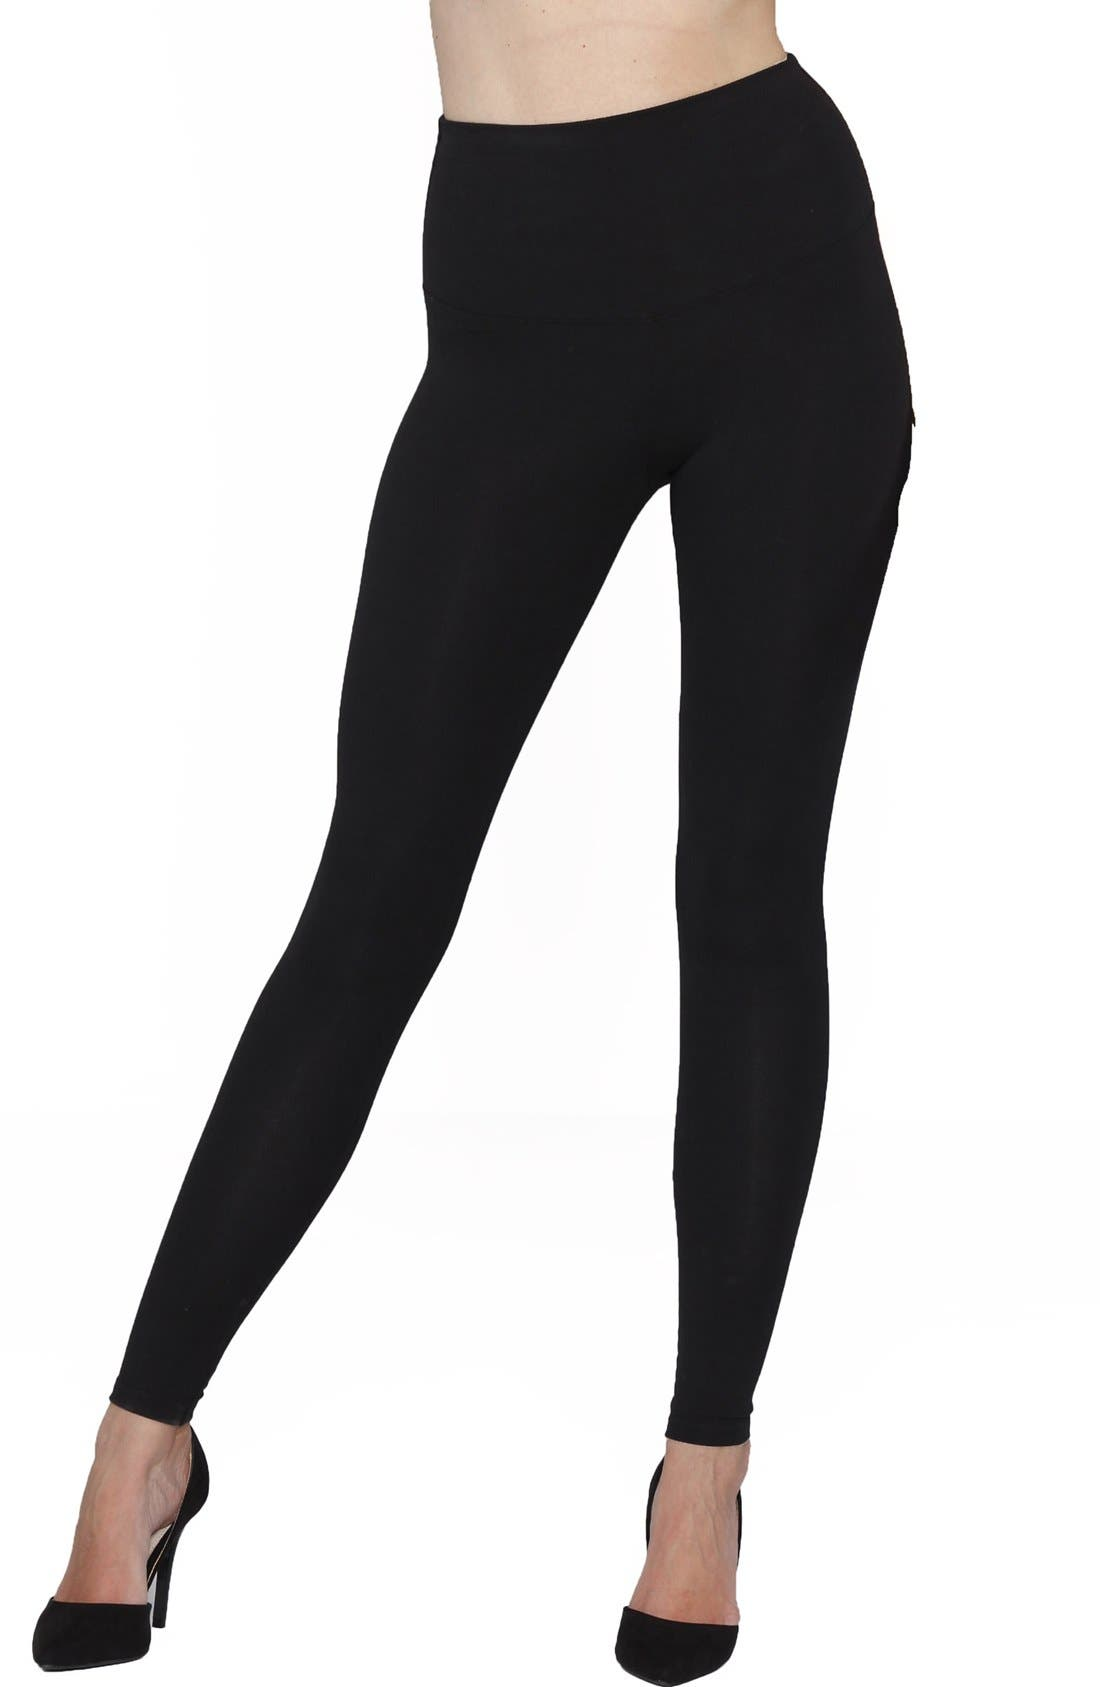 Women's Angel Maternity 'Tummy Tight' Postpartum Leggings